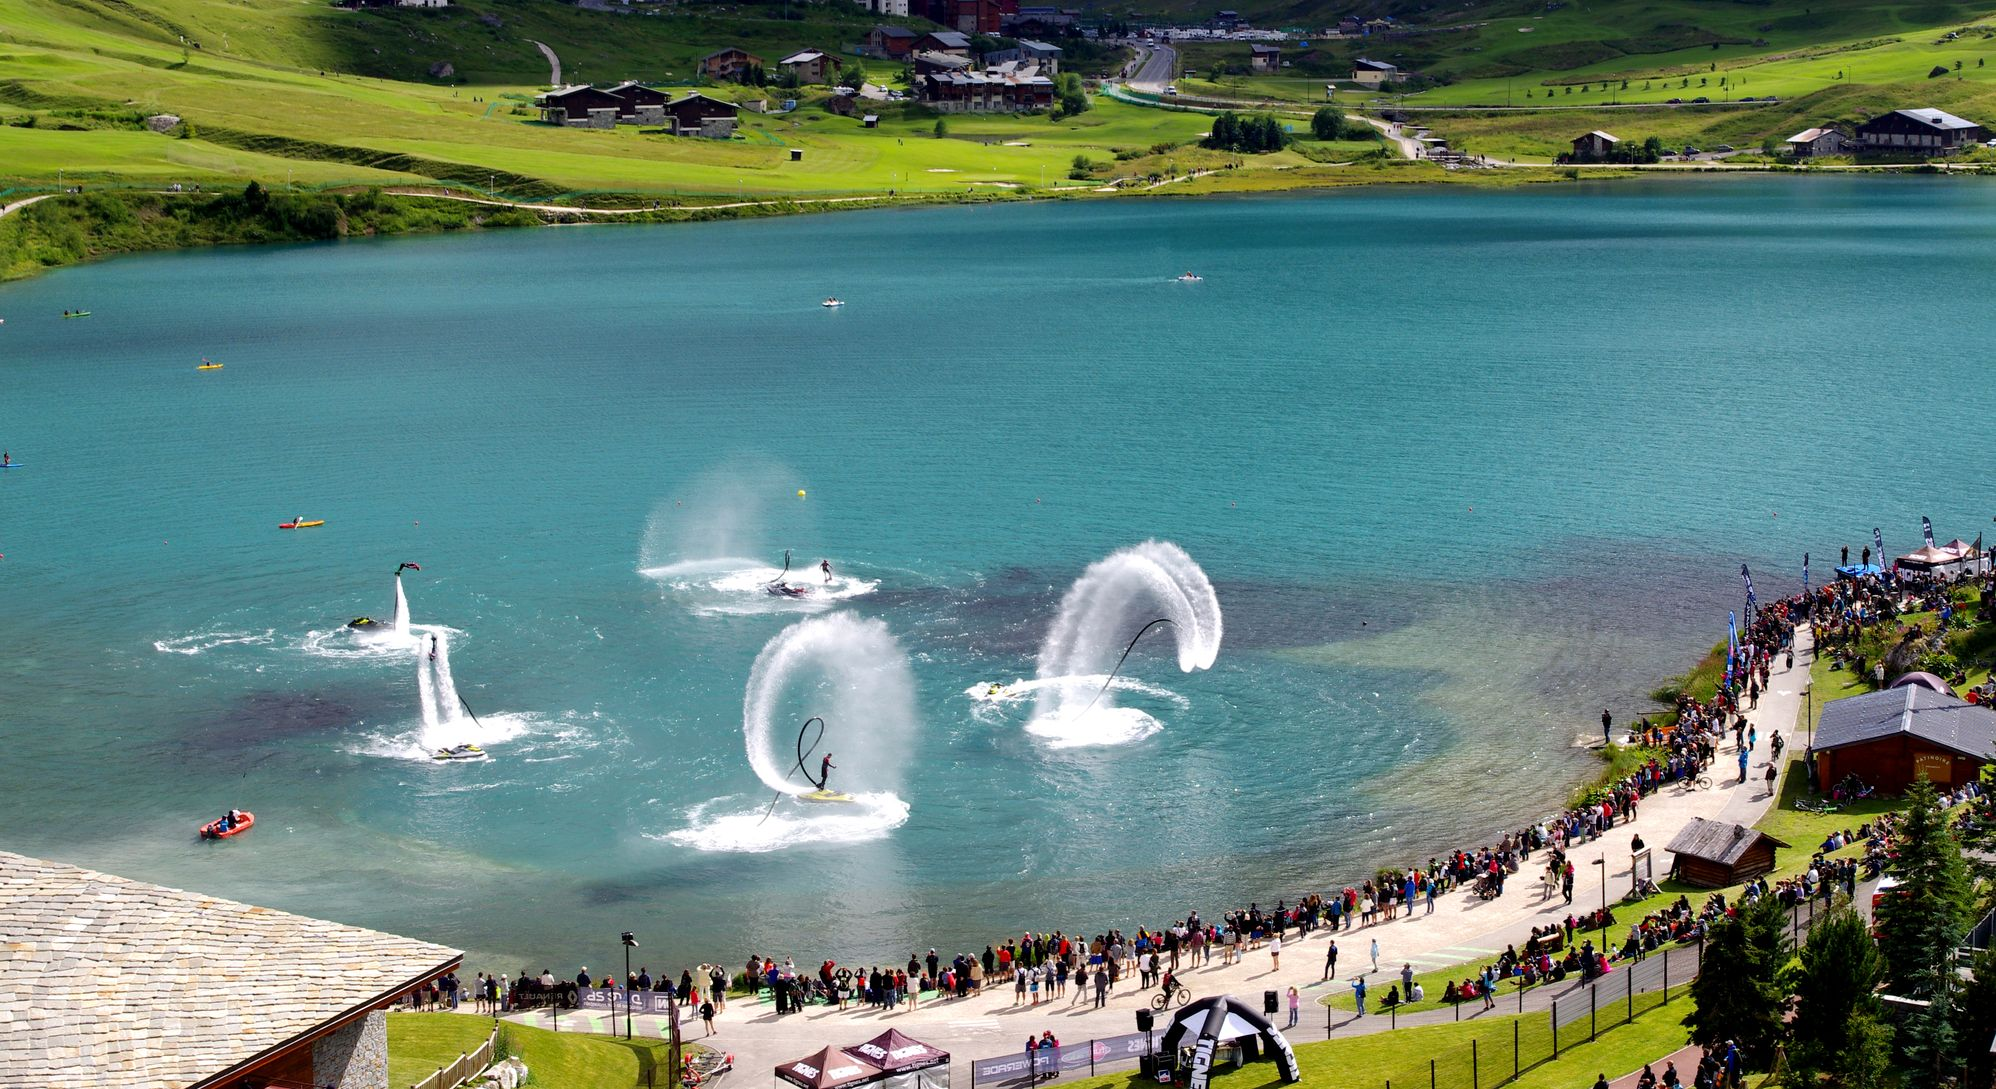 Flyboard Show 2016: comme le souffle des baleines